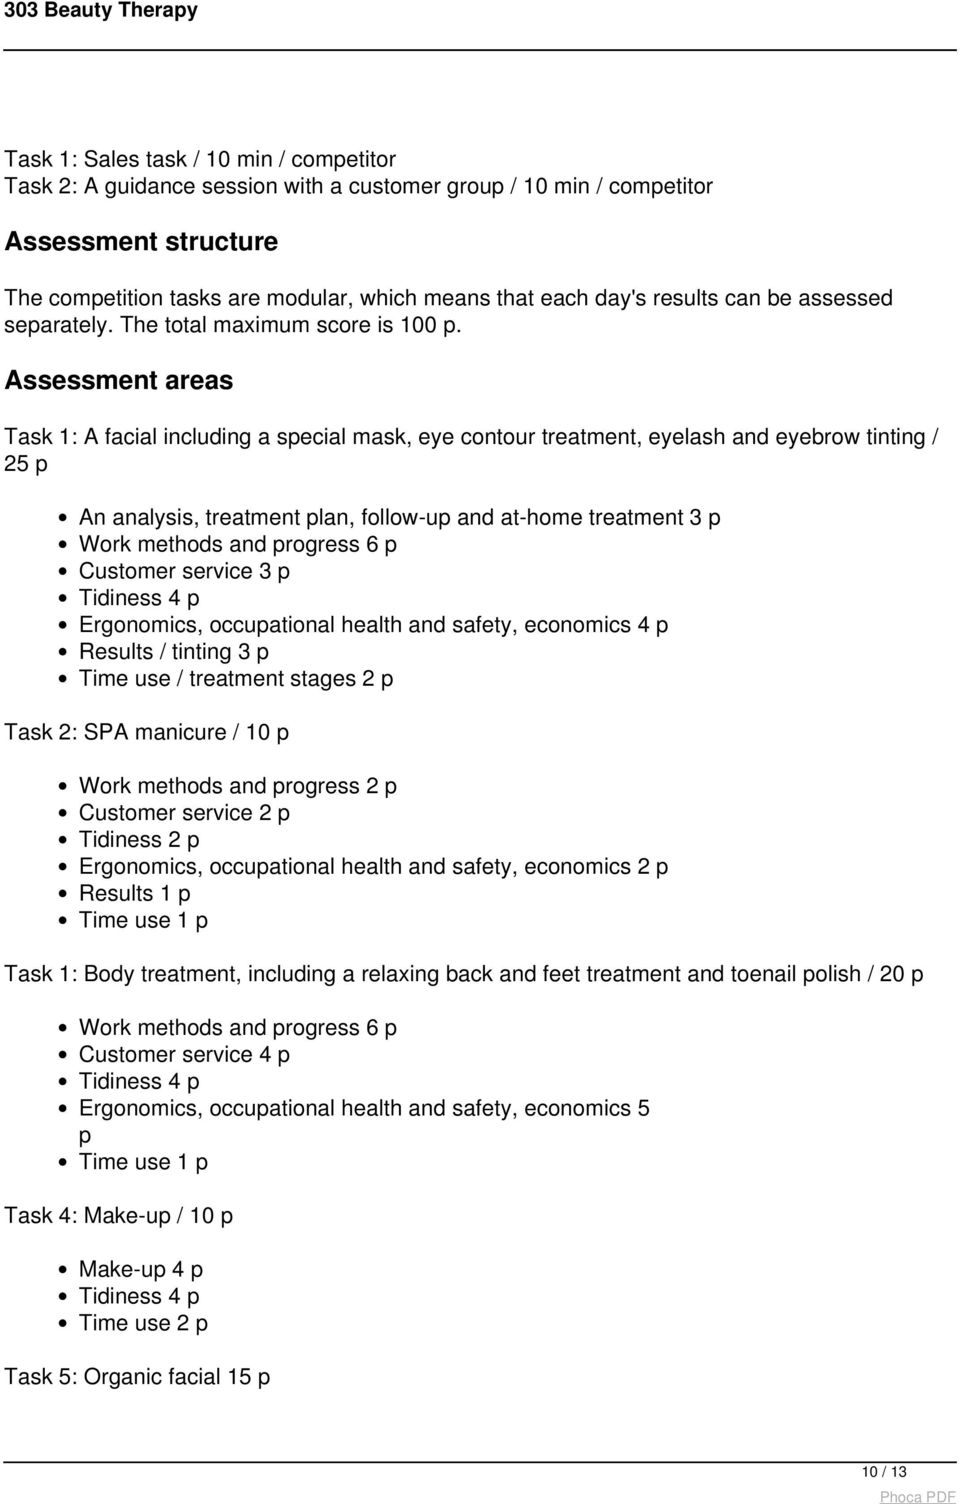 Assessment areas Task 1: A facial including a special mask, eye contour treatment, eyelash and eyebrow tinting / 25 p An analysis, treatment plan, follow-up and at-home treatment 3 p Work methods and